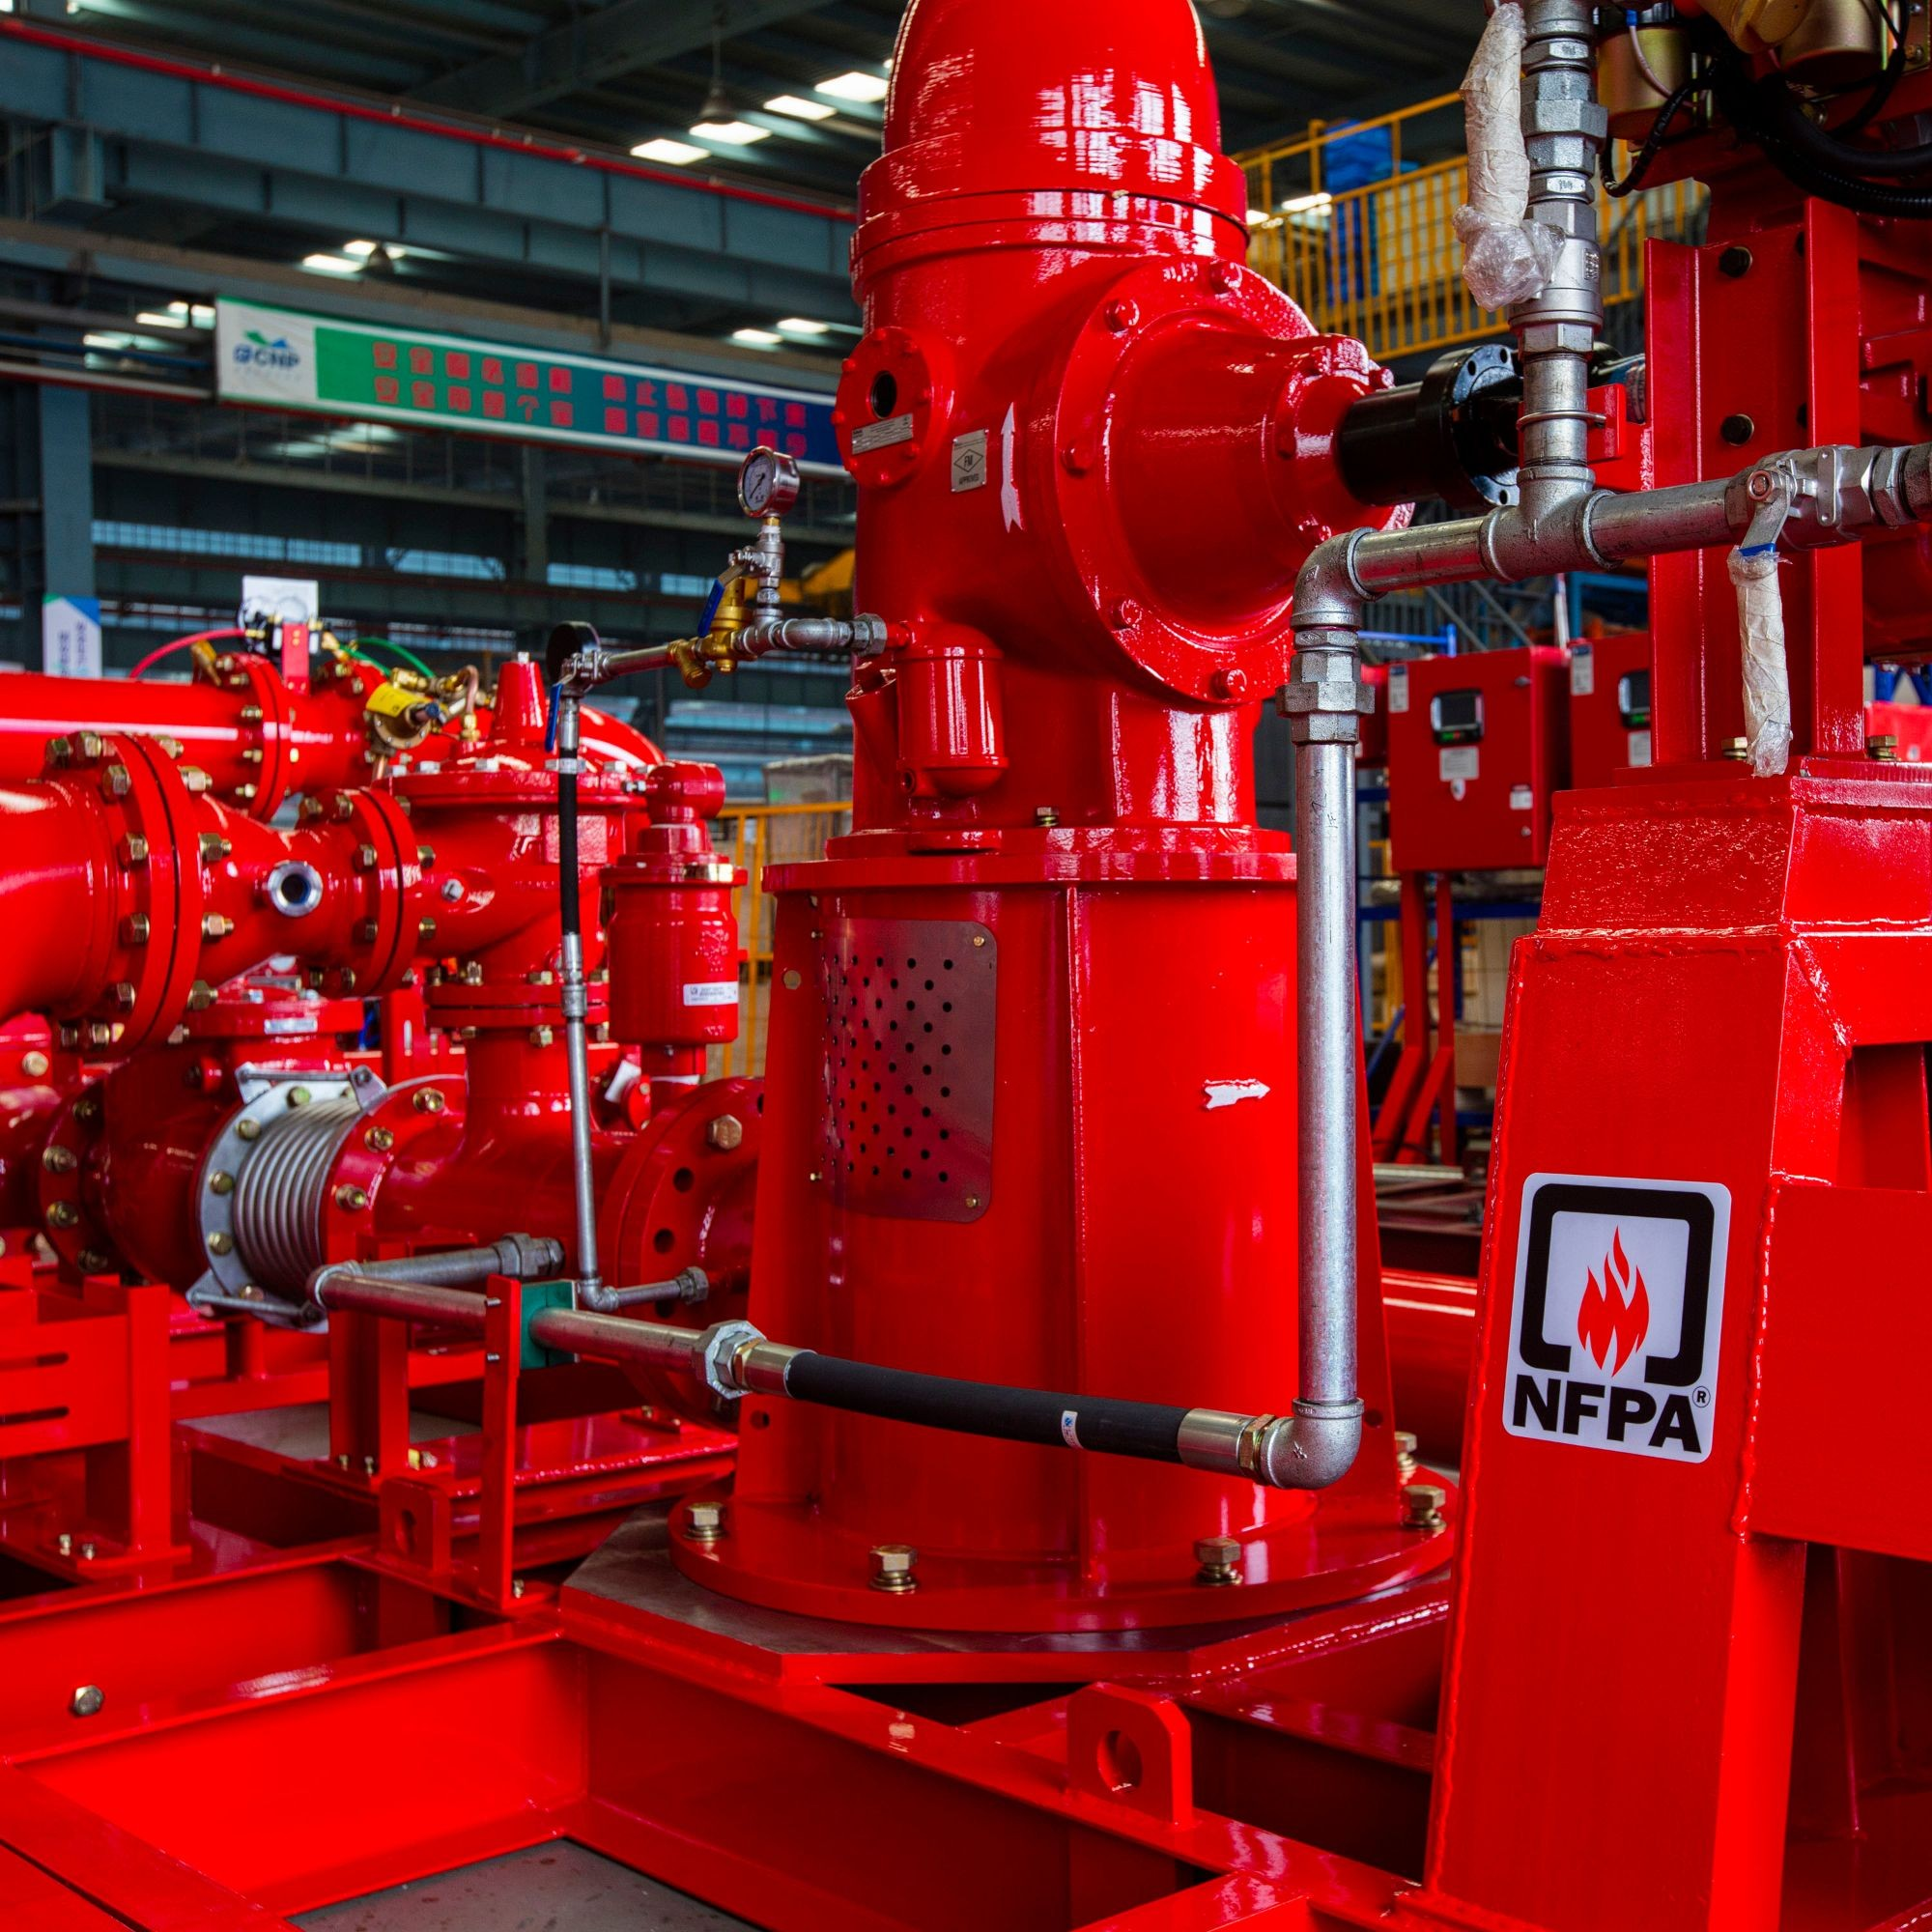 Turbine Vertical Fire Pump Group